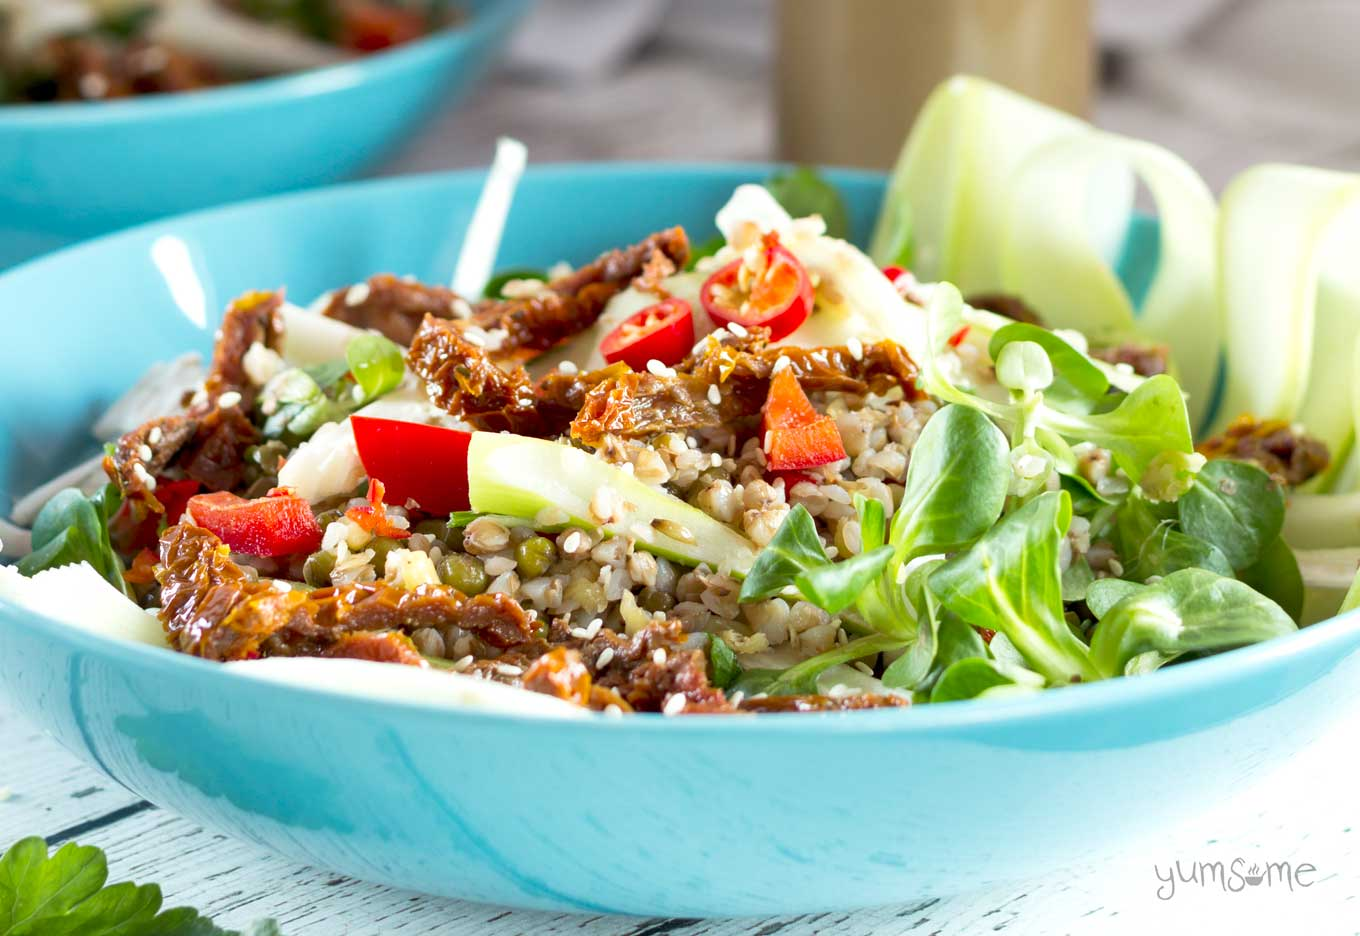 closeup view of a bowl of spicy buckwheat and mungbean salad | yumsome.com